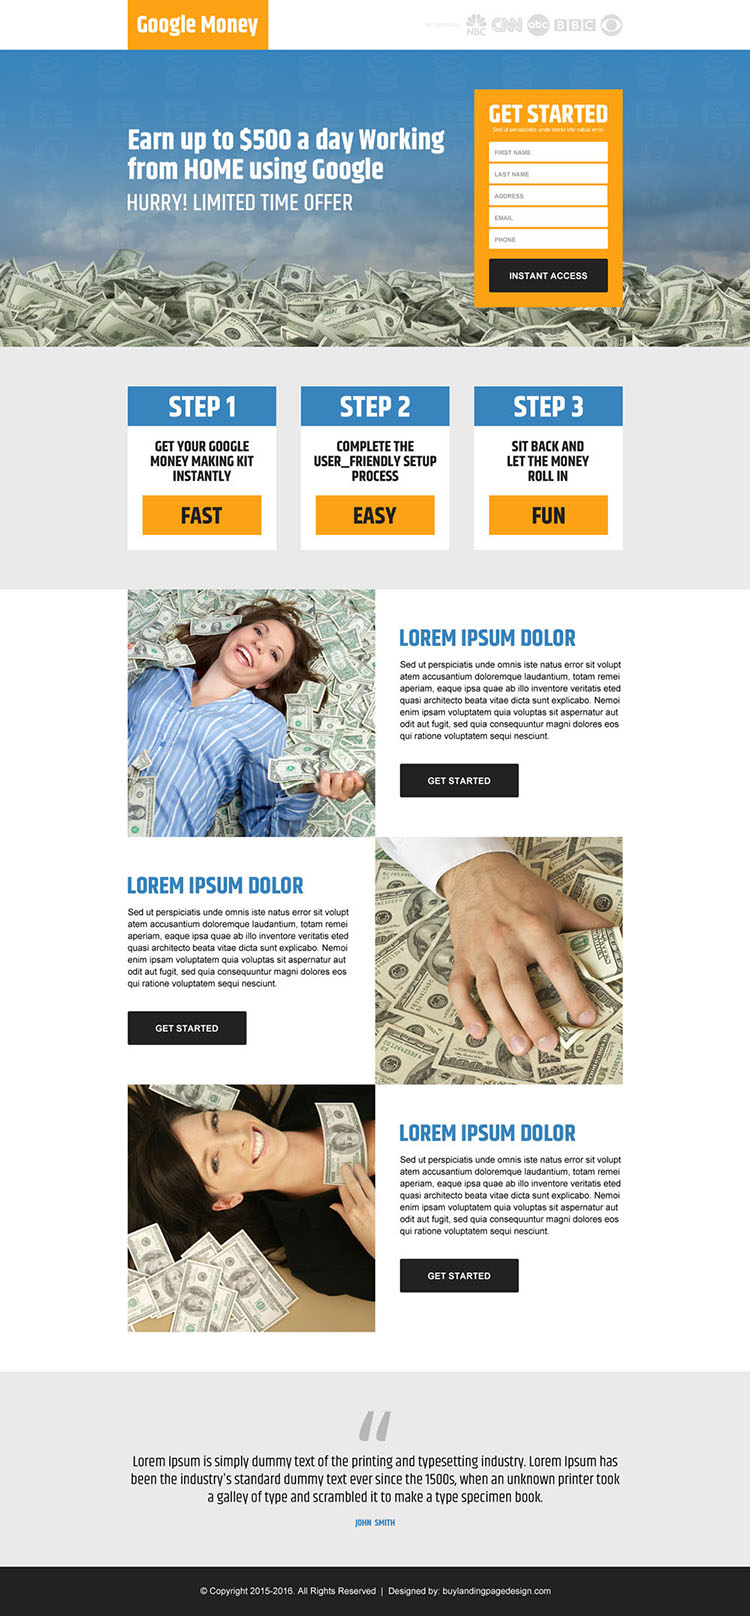 google money clean lead generating landing page design